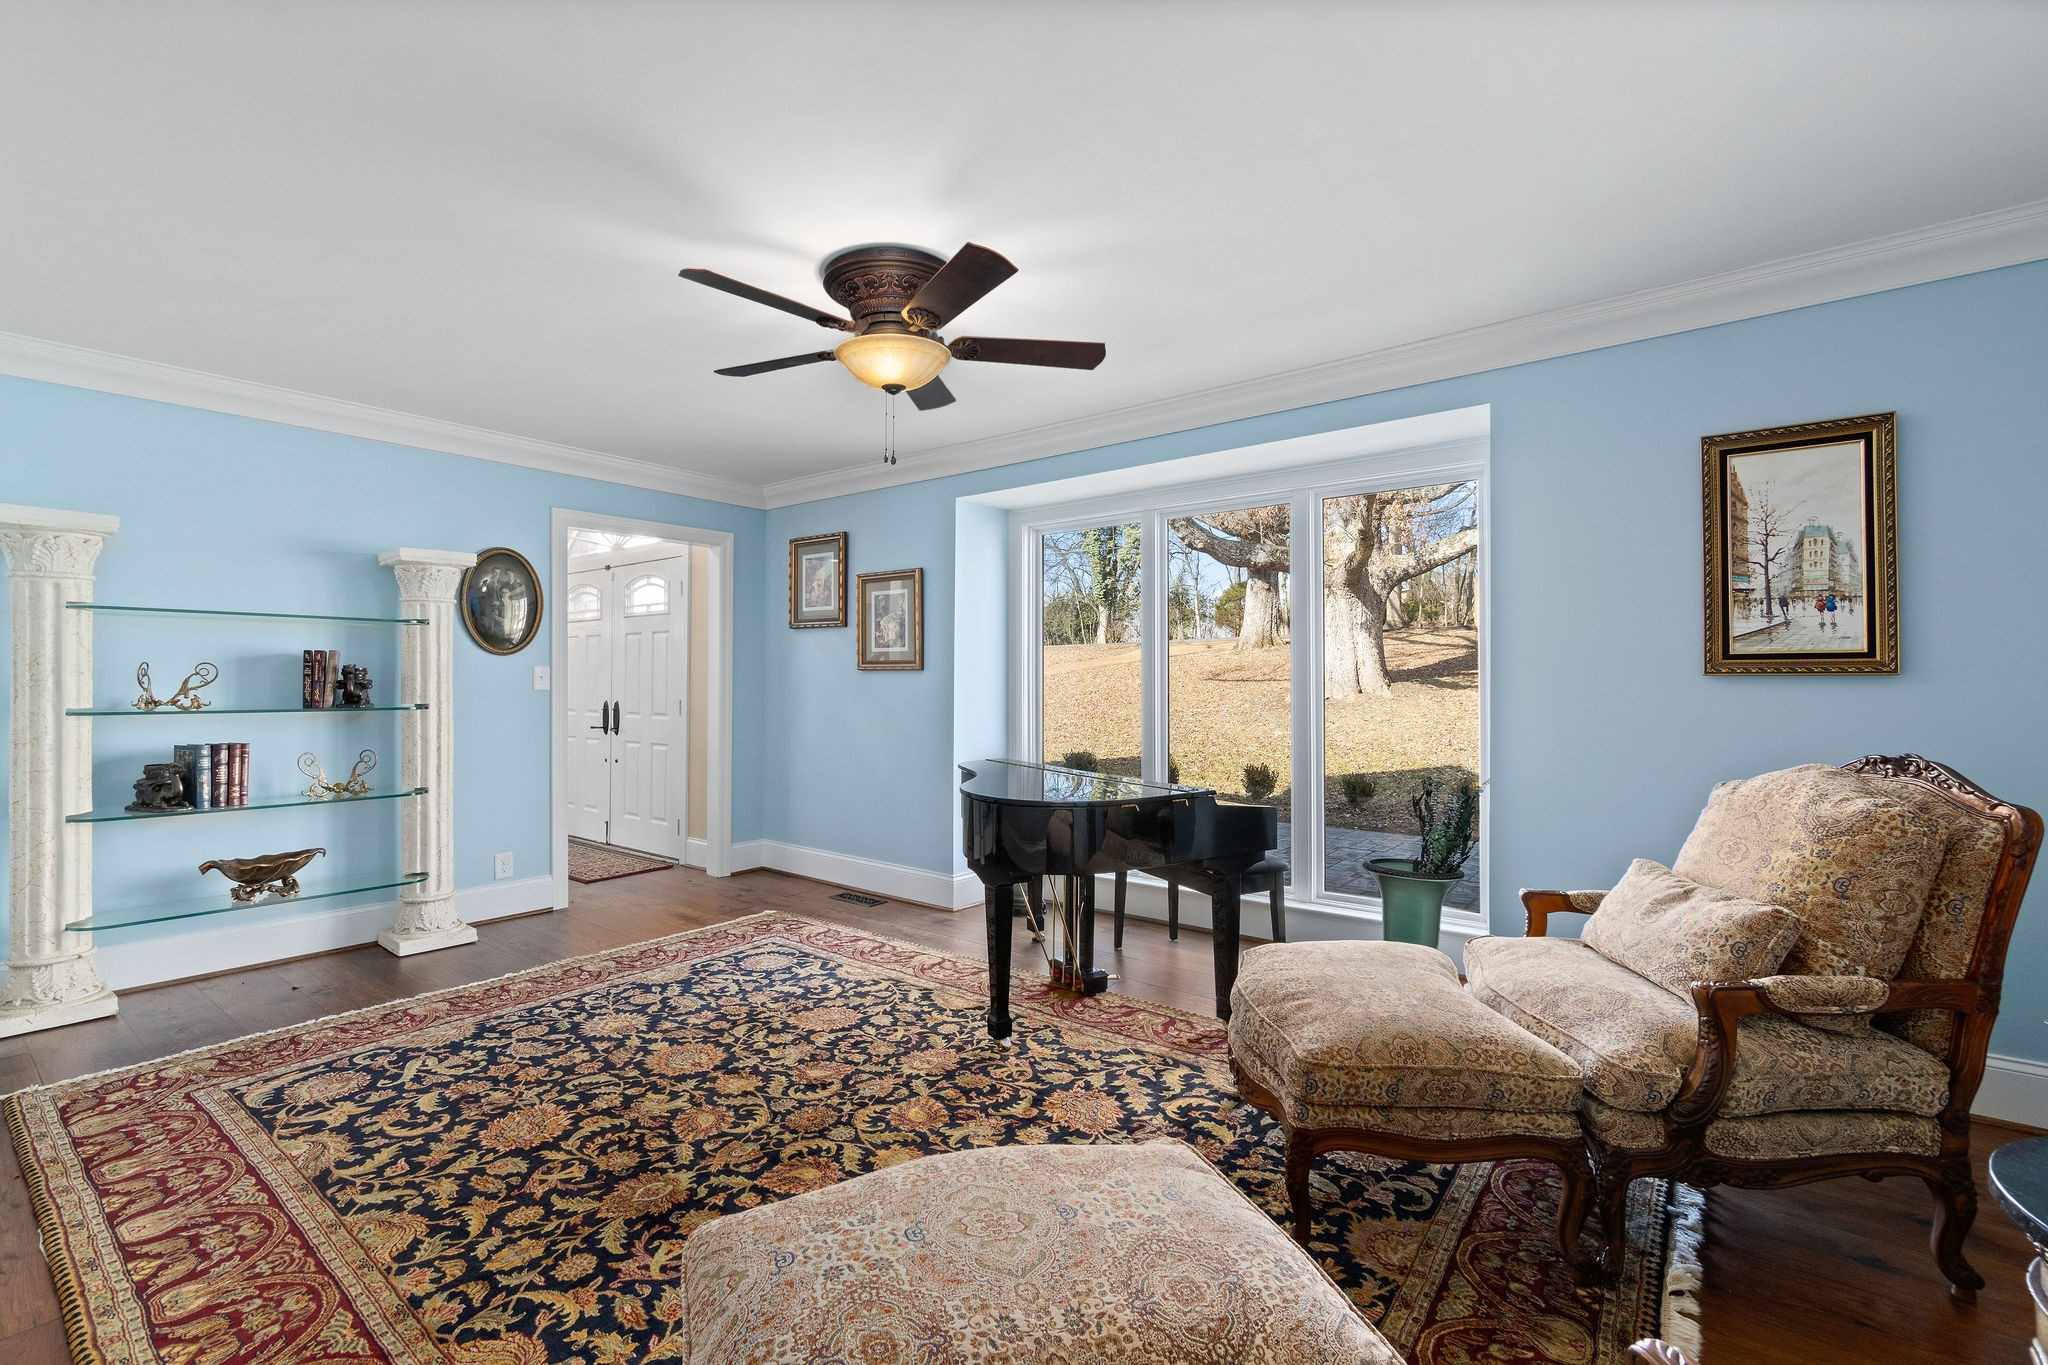 200 Ussery Rd Property Photo 12